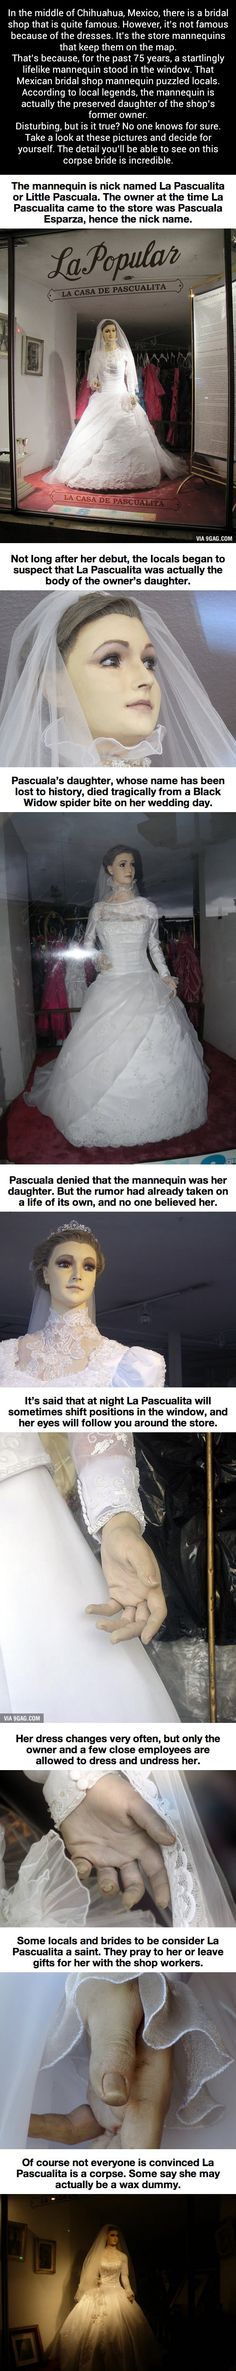 A Mexican Bridal Shop Mannequin Looks Just Like A Preserved Human Corpse (my input.pretty decent story, I'd love to see it someday if it is in fact real) Spooky Stories, Weird Stories, Ghost Stories, Horror Stories, Creepy Facts, Fun Facts, Creepy Things, Creepy Stuff, Random Stuff